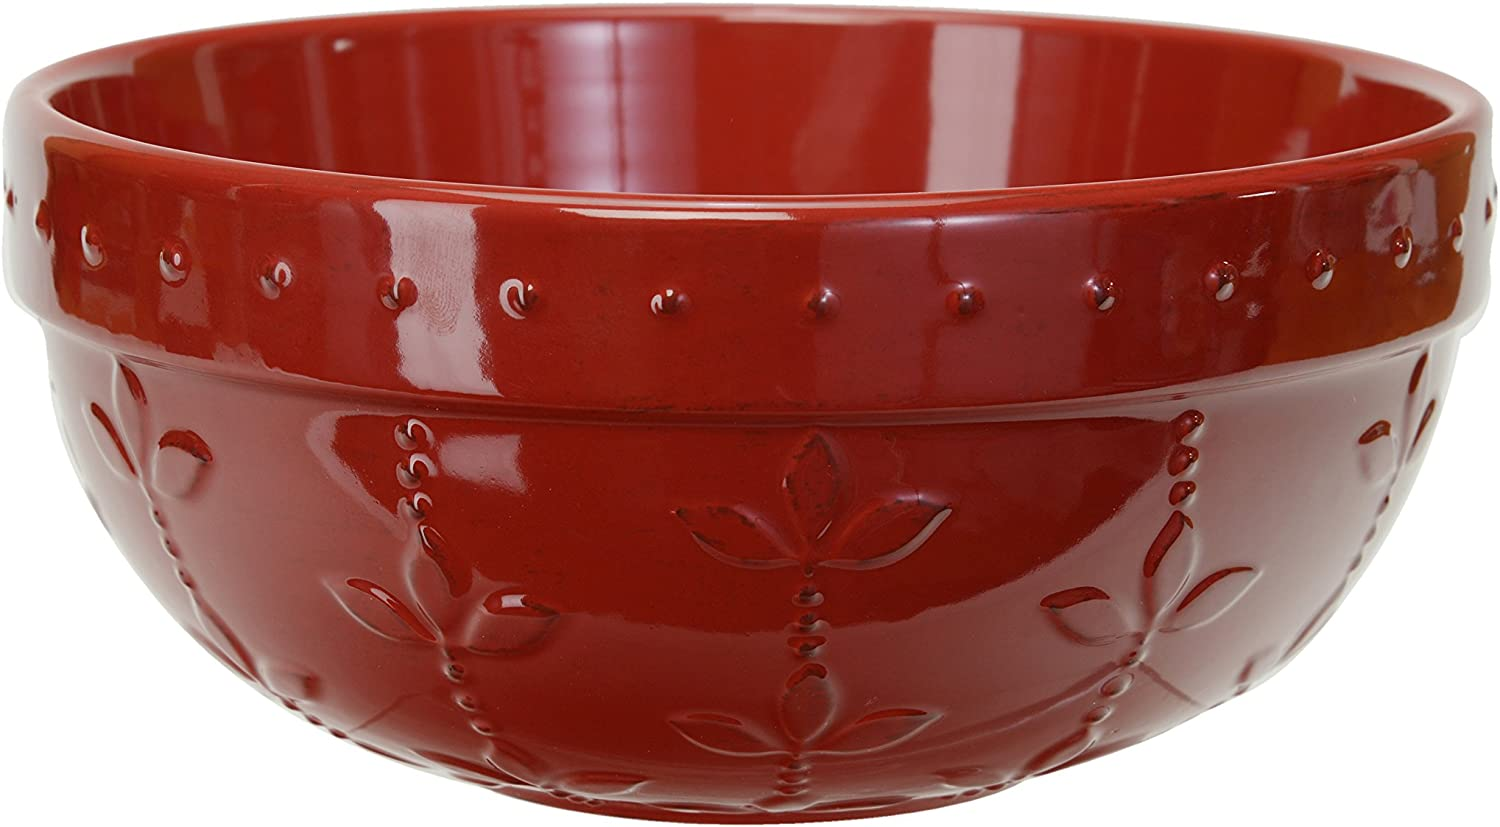 Signature Housewares Sorrento Collection Set of 2 Mixing Bowls 8-Inch and 9-Inch Aqua